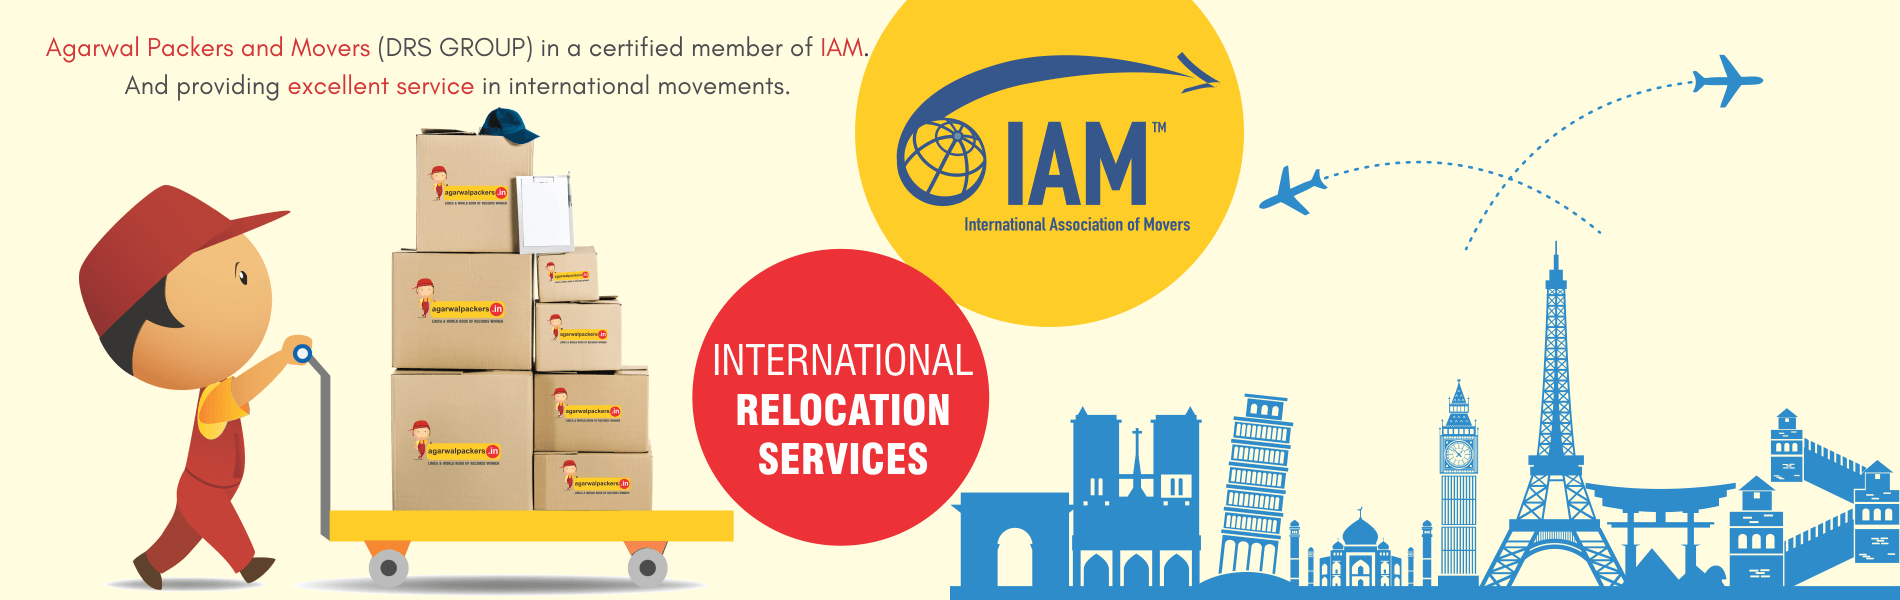 International Association of Movers - Agarwal Packers and Movers DRS Group